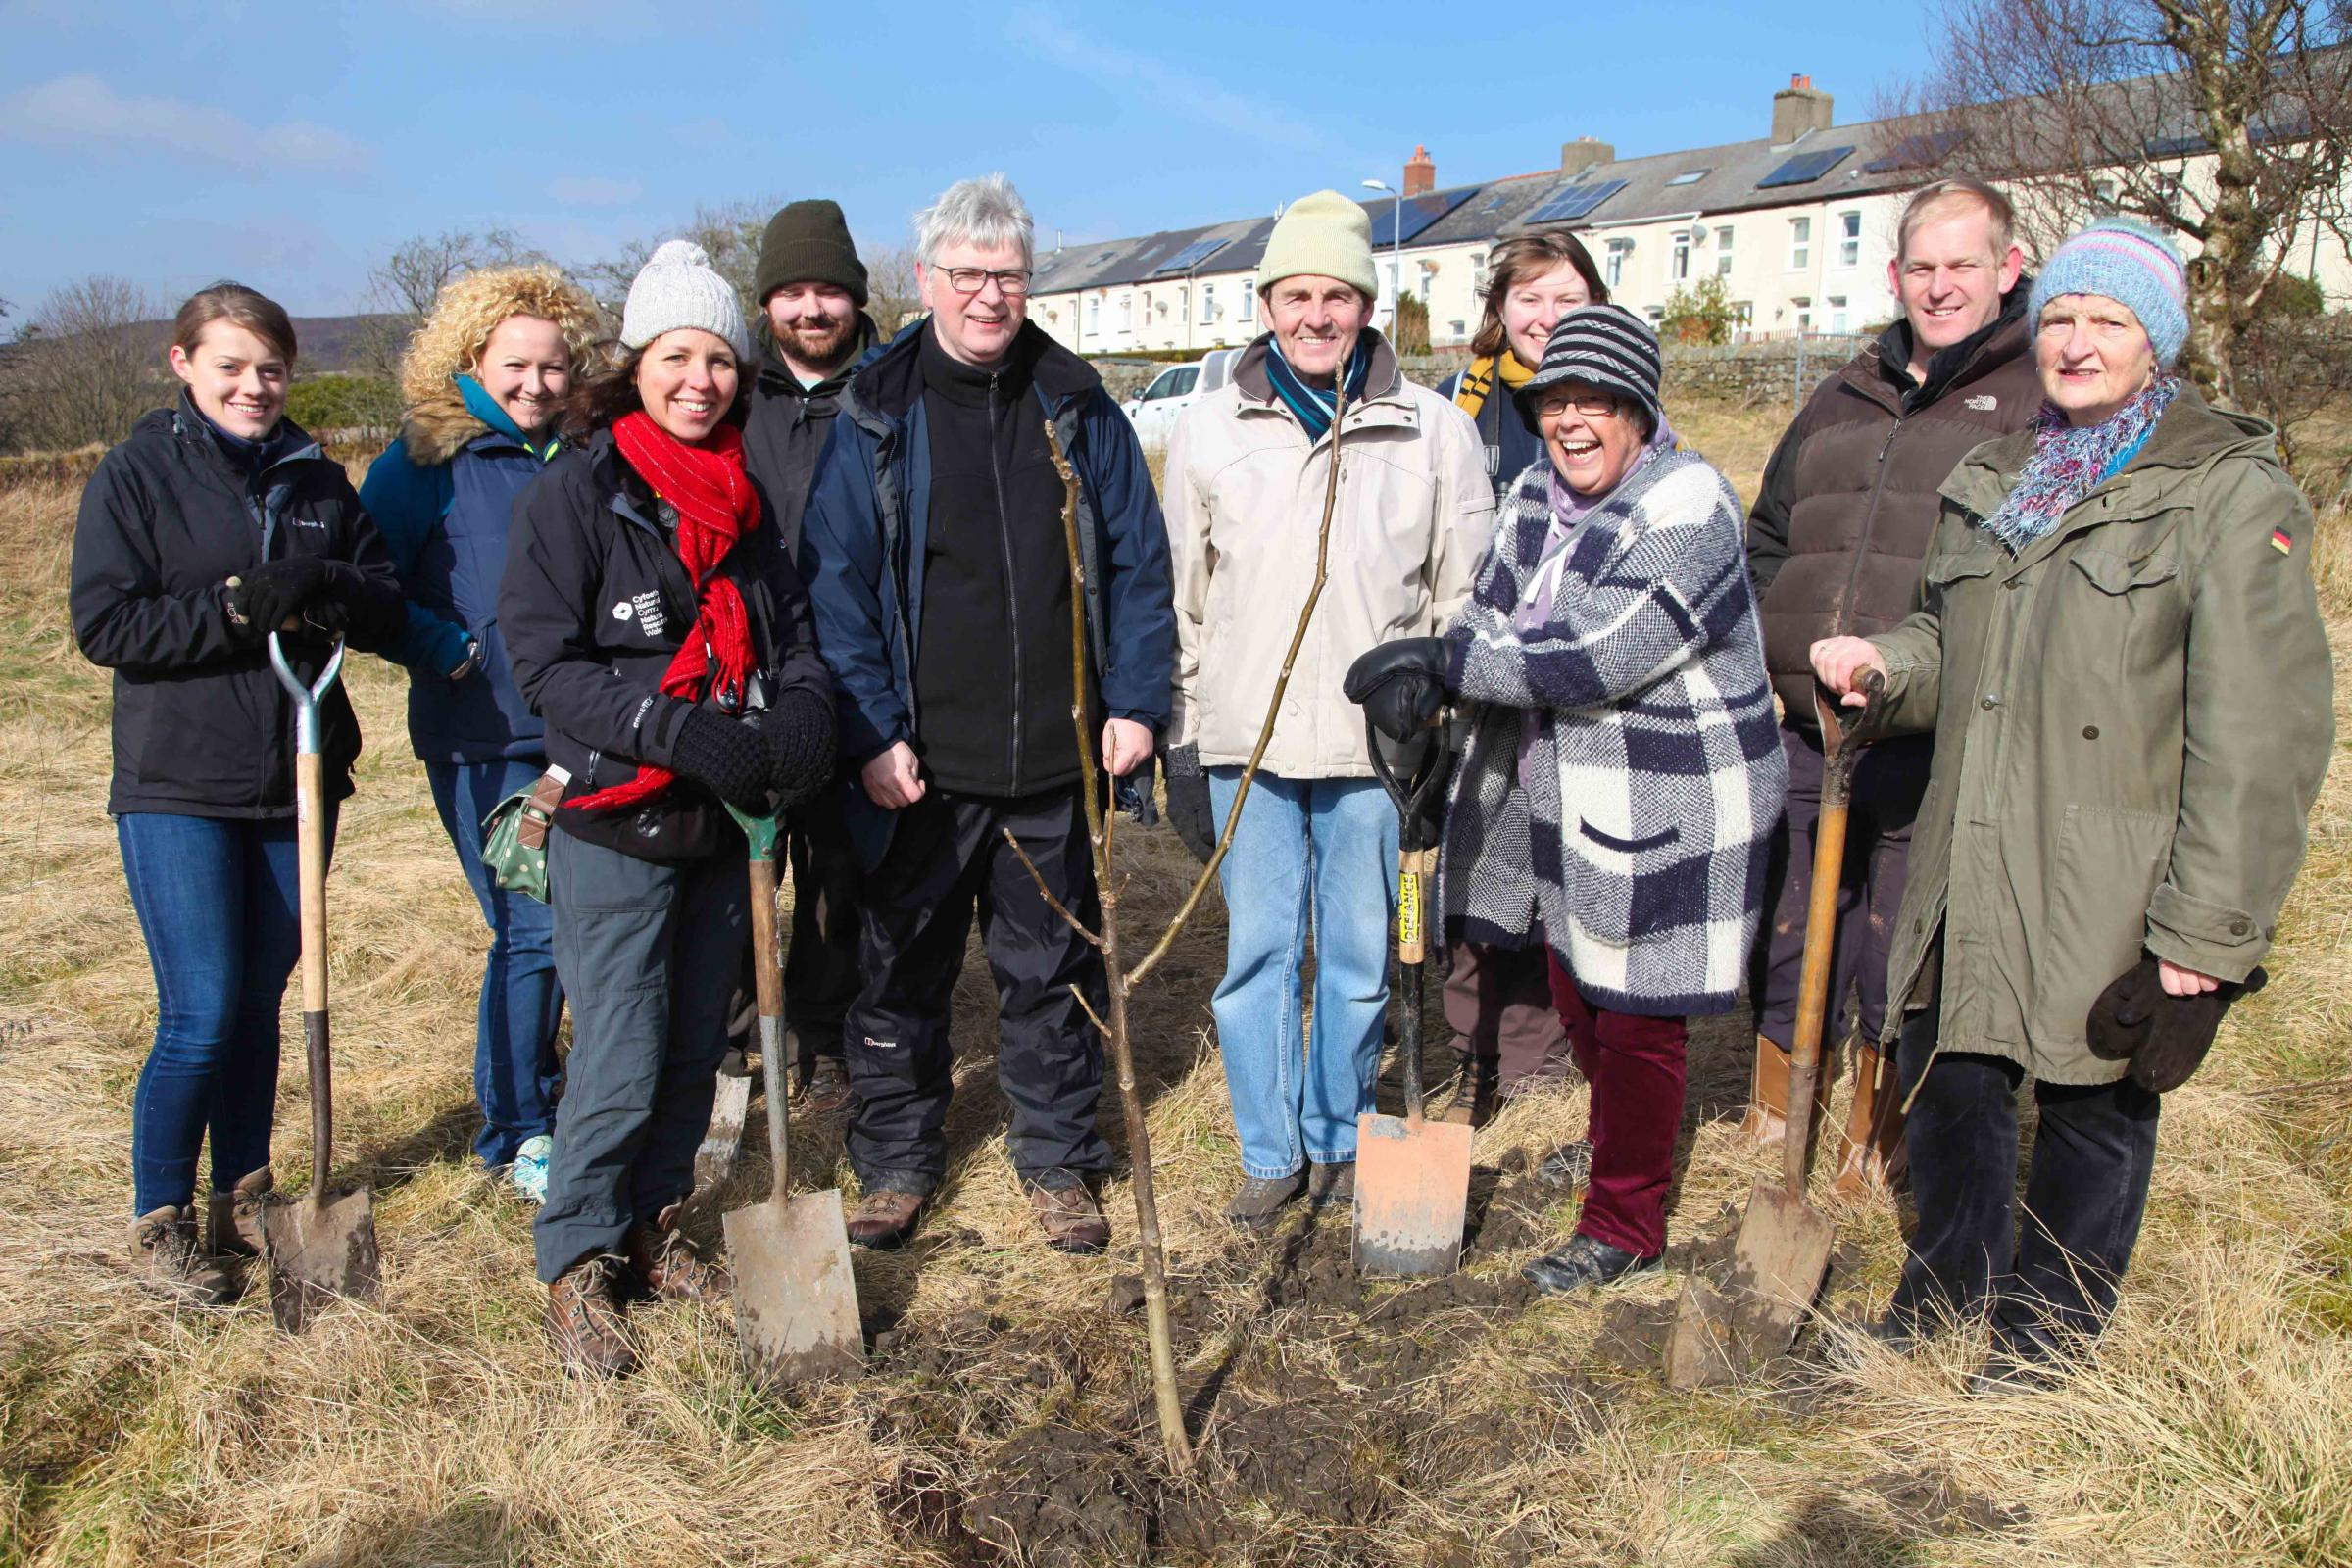 A project to plant a tree for every child born or adopted in Wales has celebrated its tenth anniversary with a planting session at the Garn Lakes Local Nature Reserve in Blaenavon.